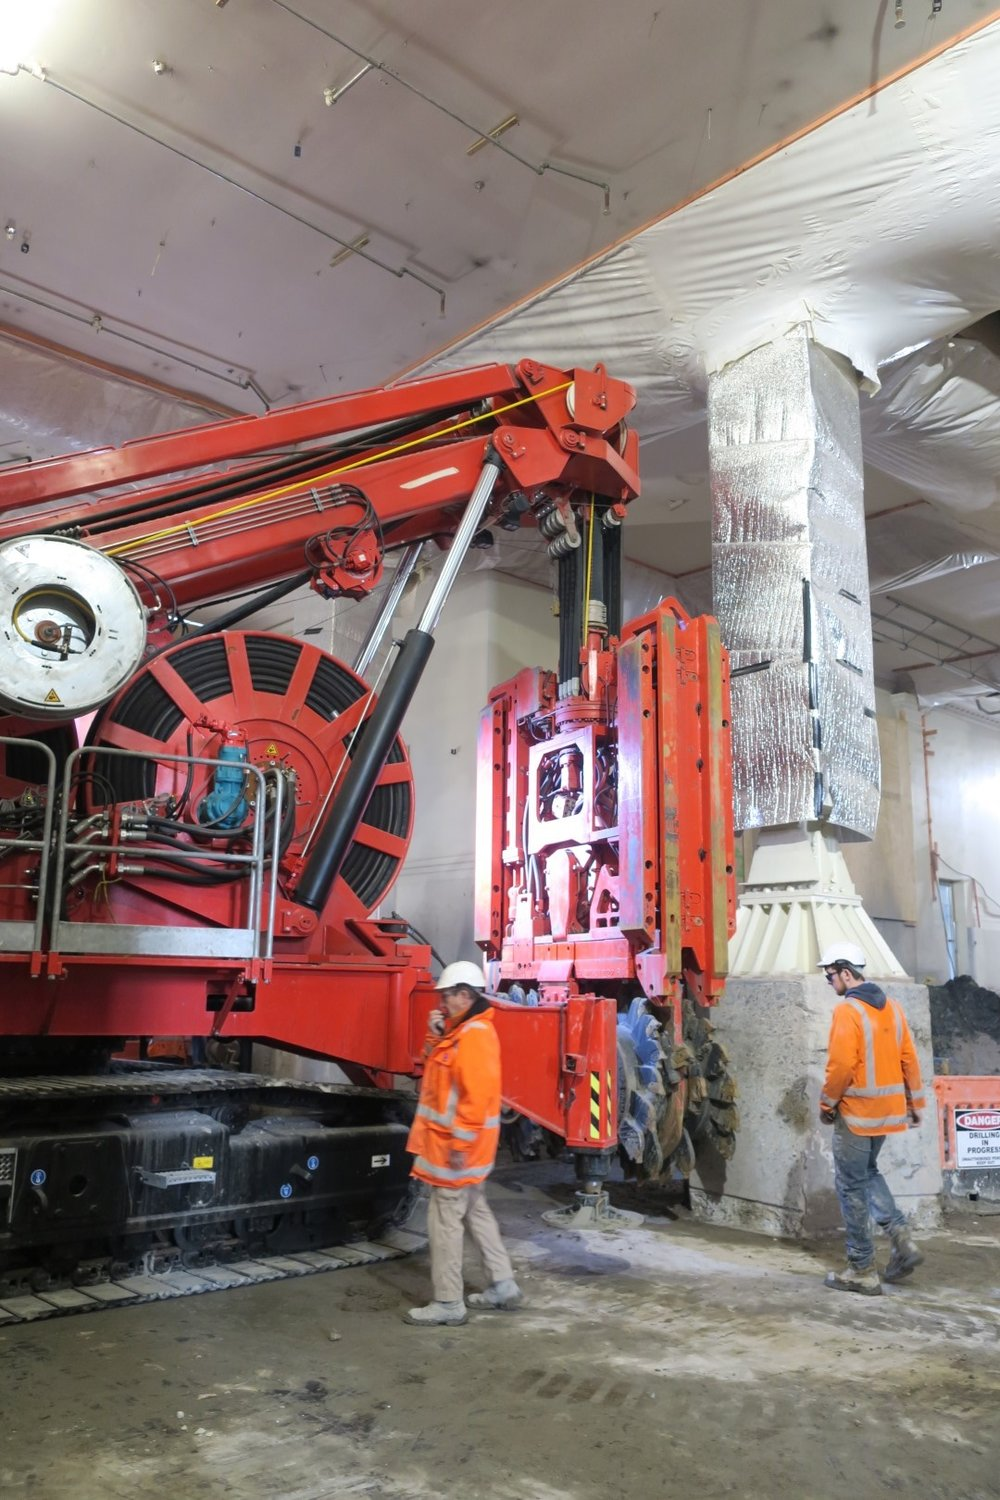 Sandrine is a 90-tonne compact hydrofraise piling rig that was used to dig the 15- to 20-metre-deep diaphragm wall (D-wall) panels that form the structural support for the CRL tunnels at Britomart Station.